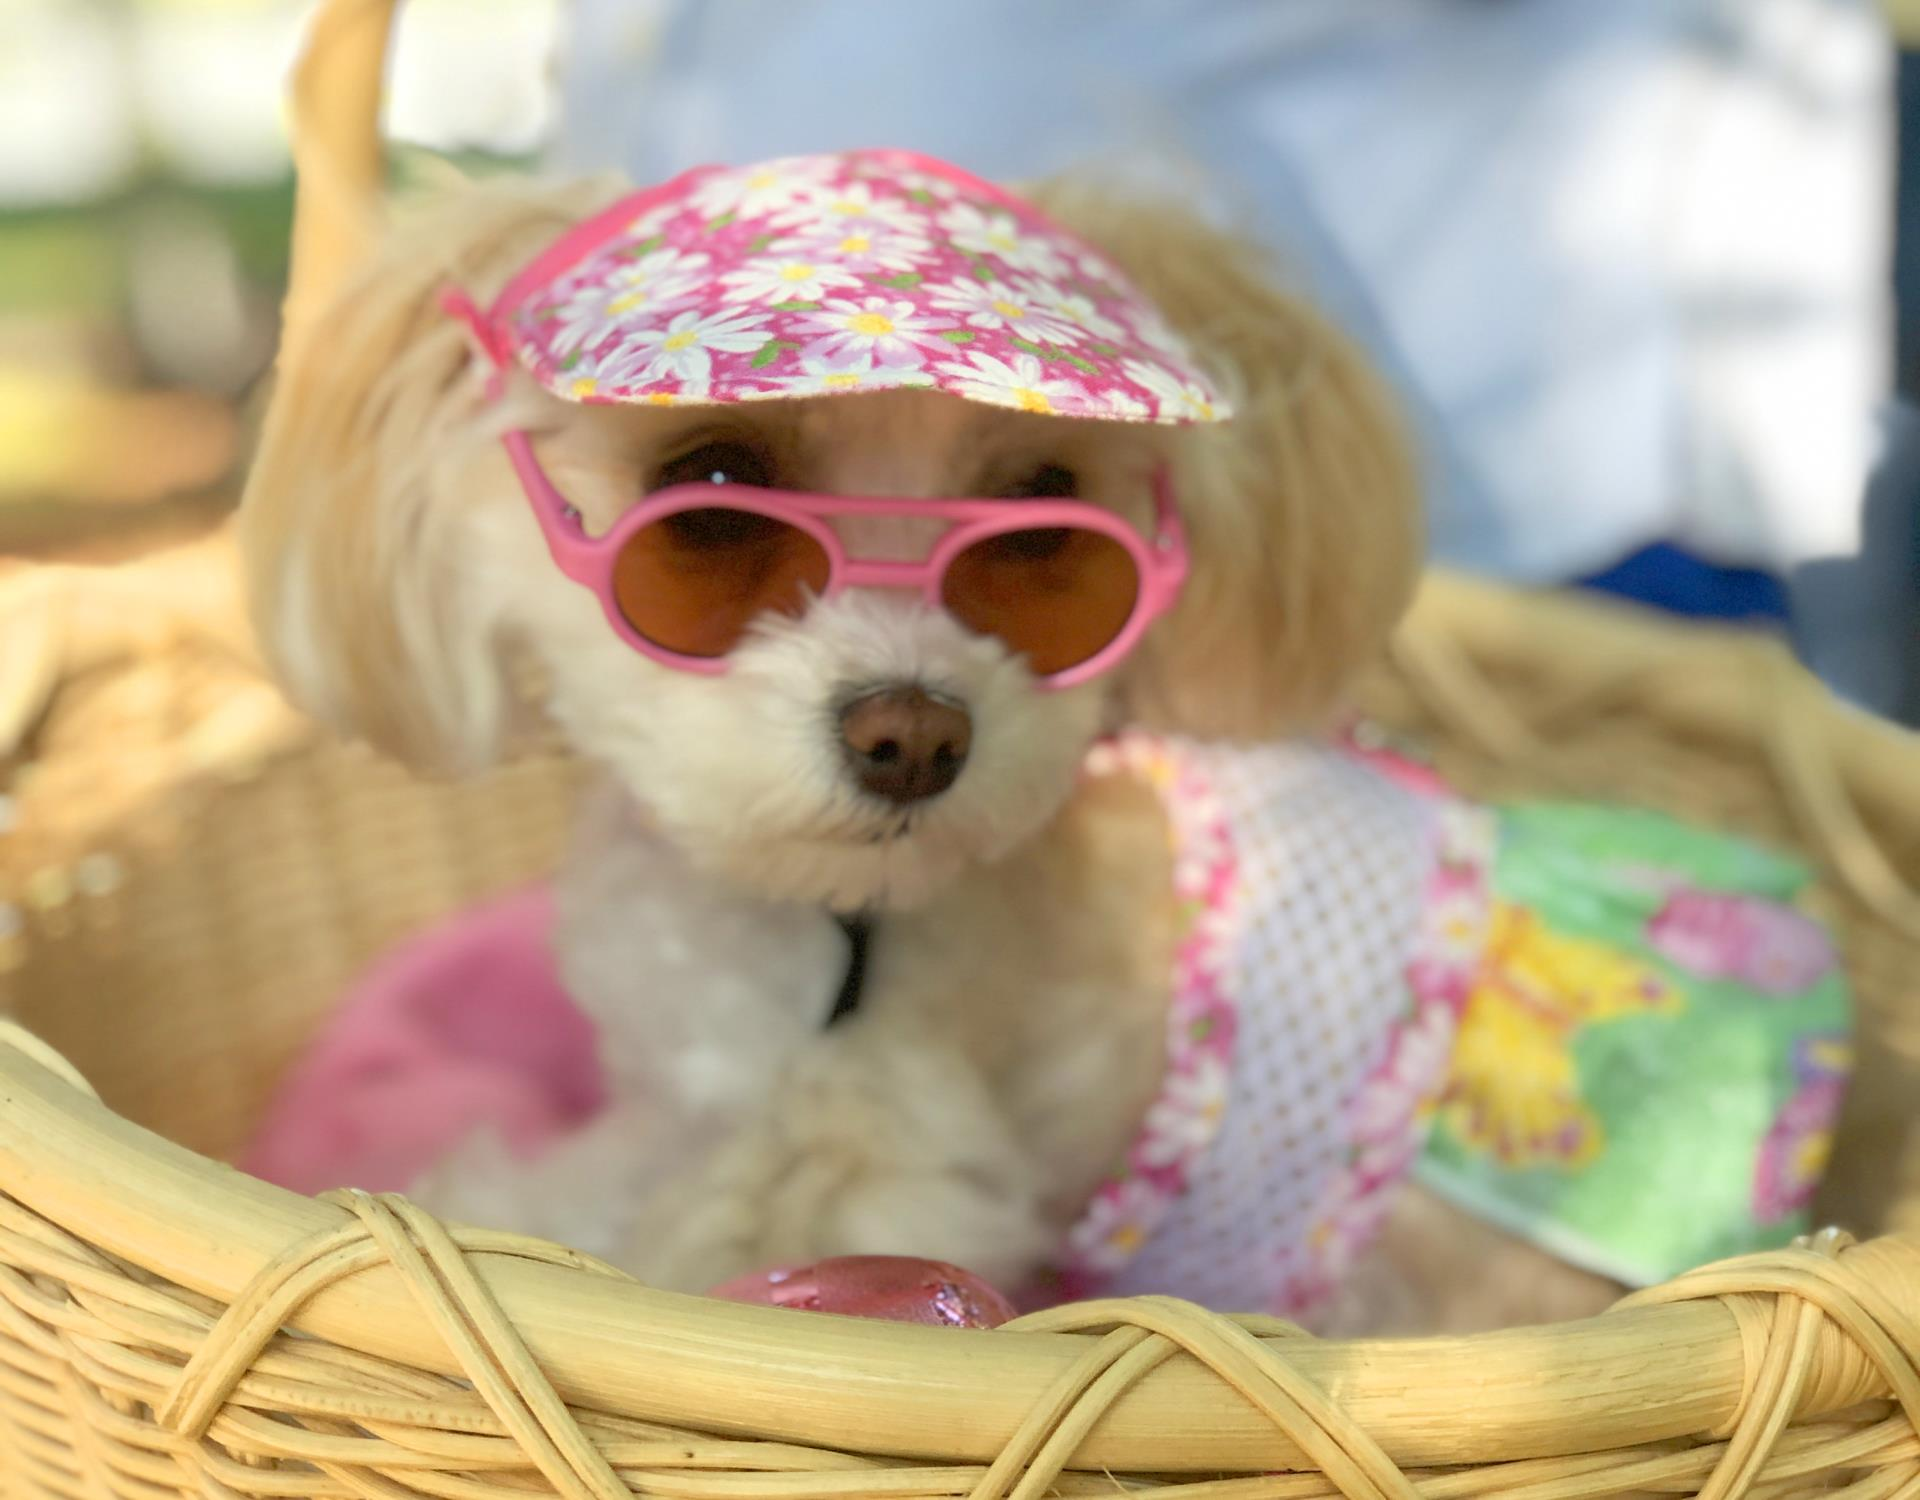 Small dog dressed up with hat and sunglasses in a wicker basket